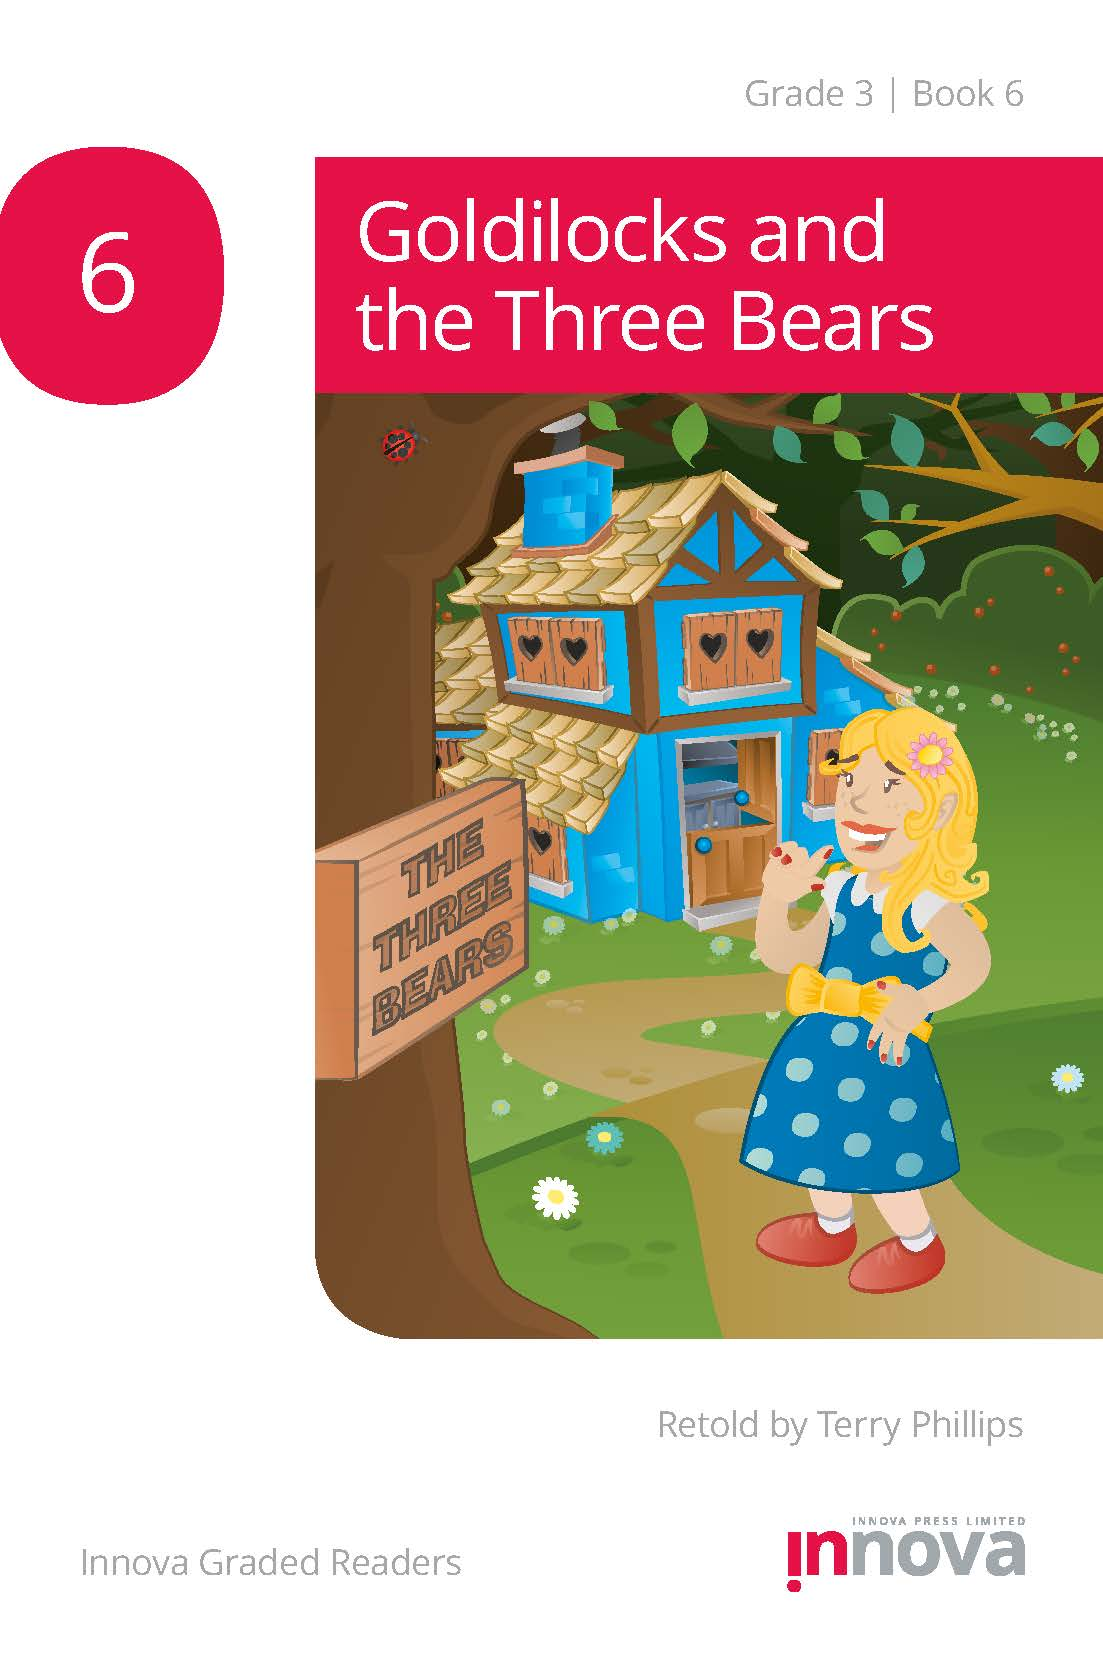 Innova Press Goldilocks and the Three Bears, a girl in a blue spotty dress stands in front of a blue house in the woods